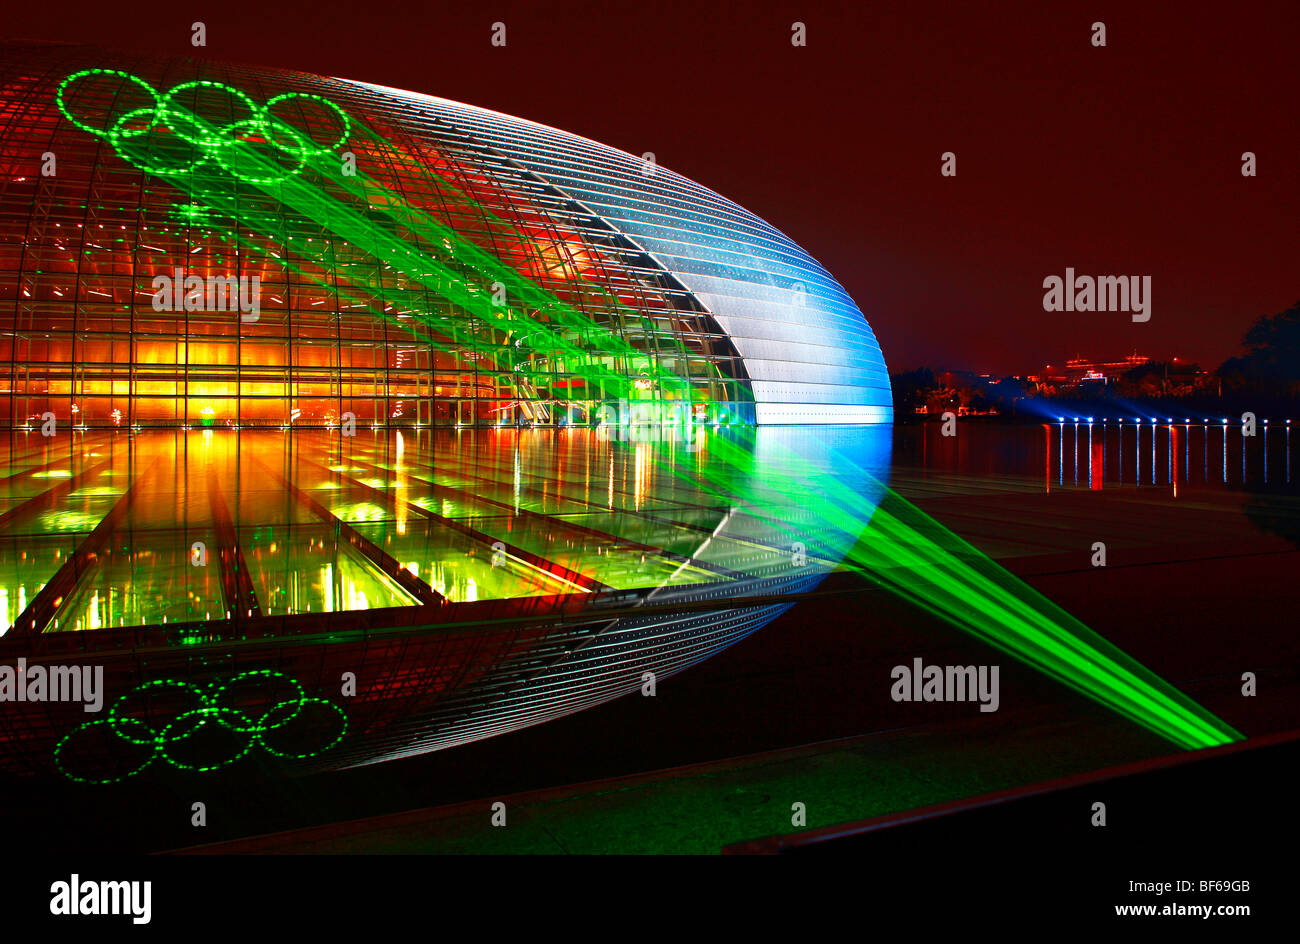 Laser scene of National Centre For The Performing Arts, Beijing, China - Stock Image